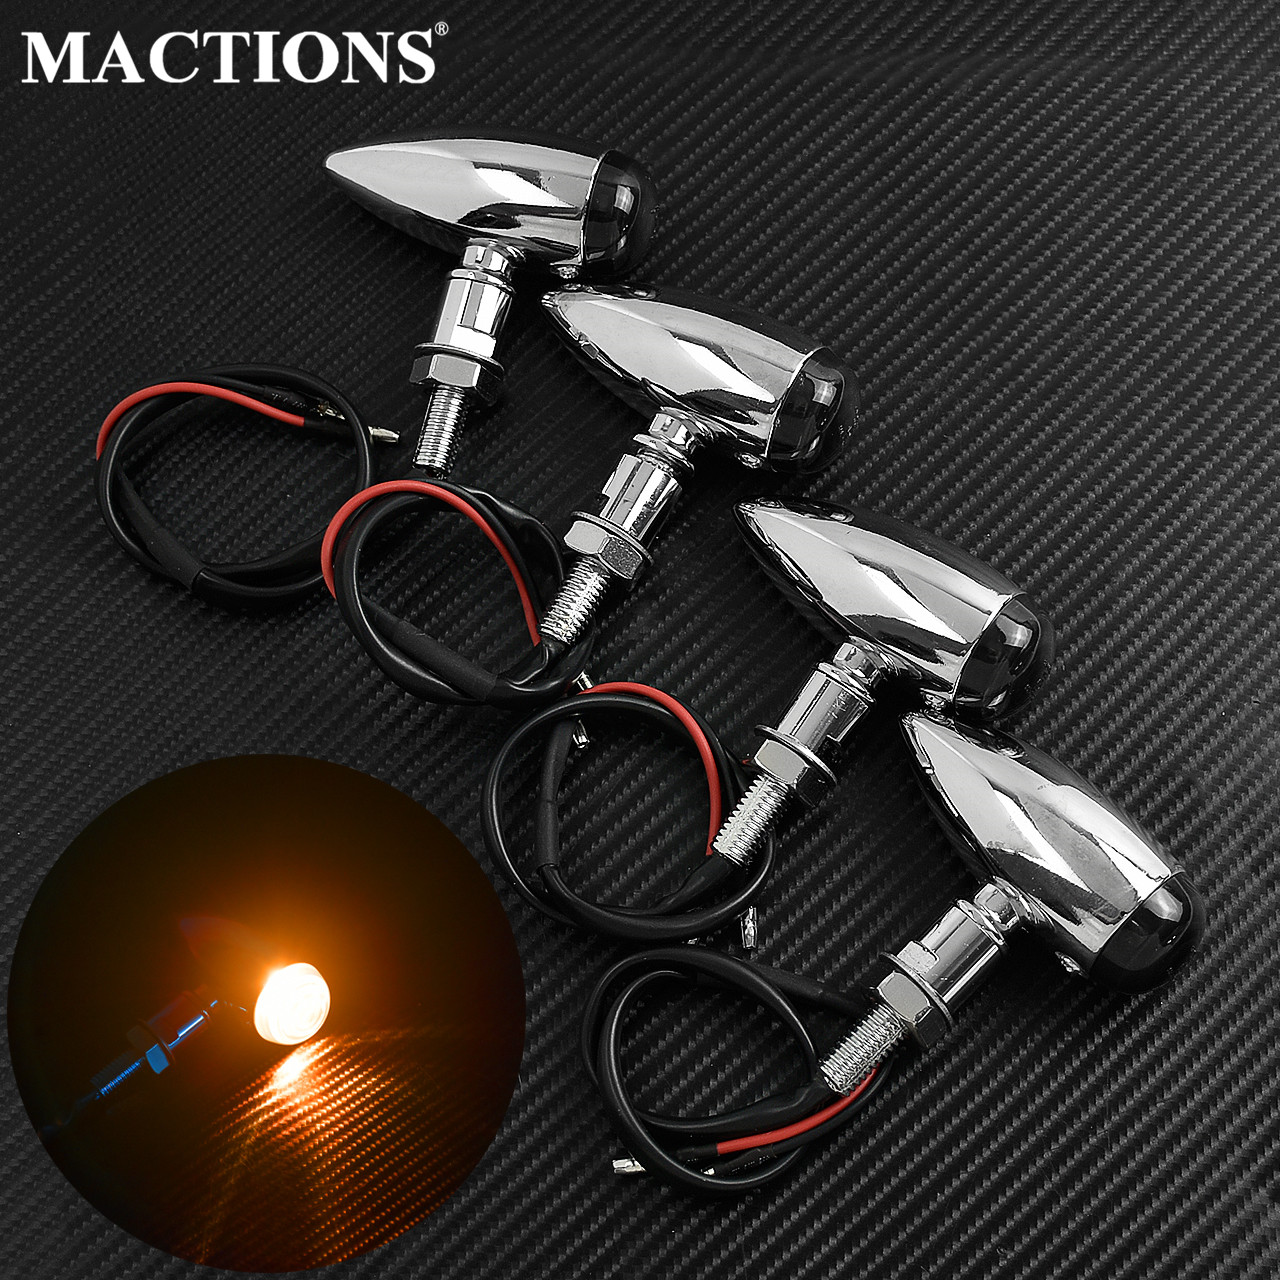 Universal Motorcycle EM Bullet Turn Signal Indicator Light Chrome Lamp 12V For Harley Touring Sportster Mini Bobber Chopper